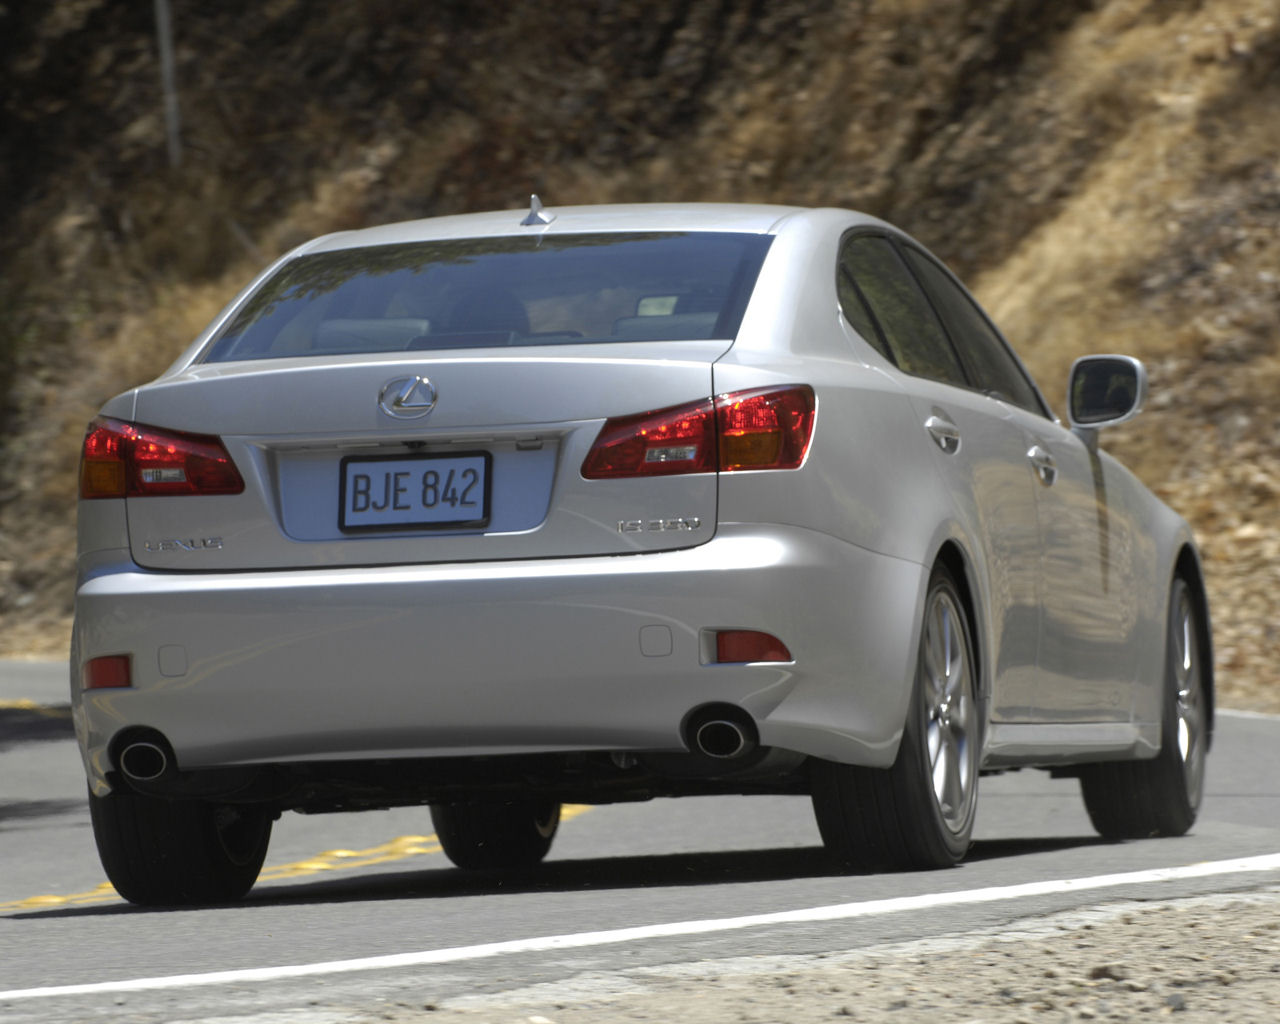 Lexus IS 250, 350, 250C, 350C, IS-F - Free 1280x1024 ...